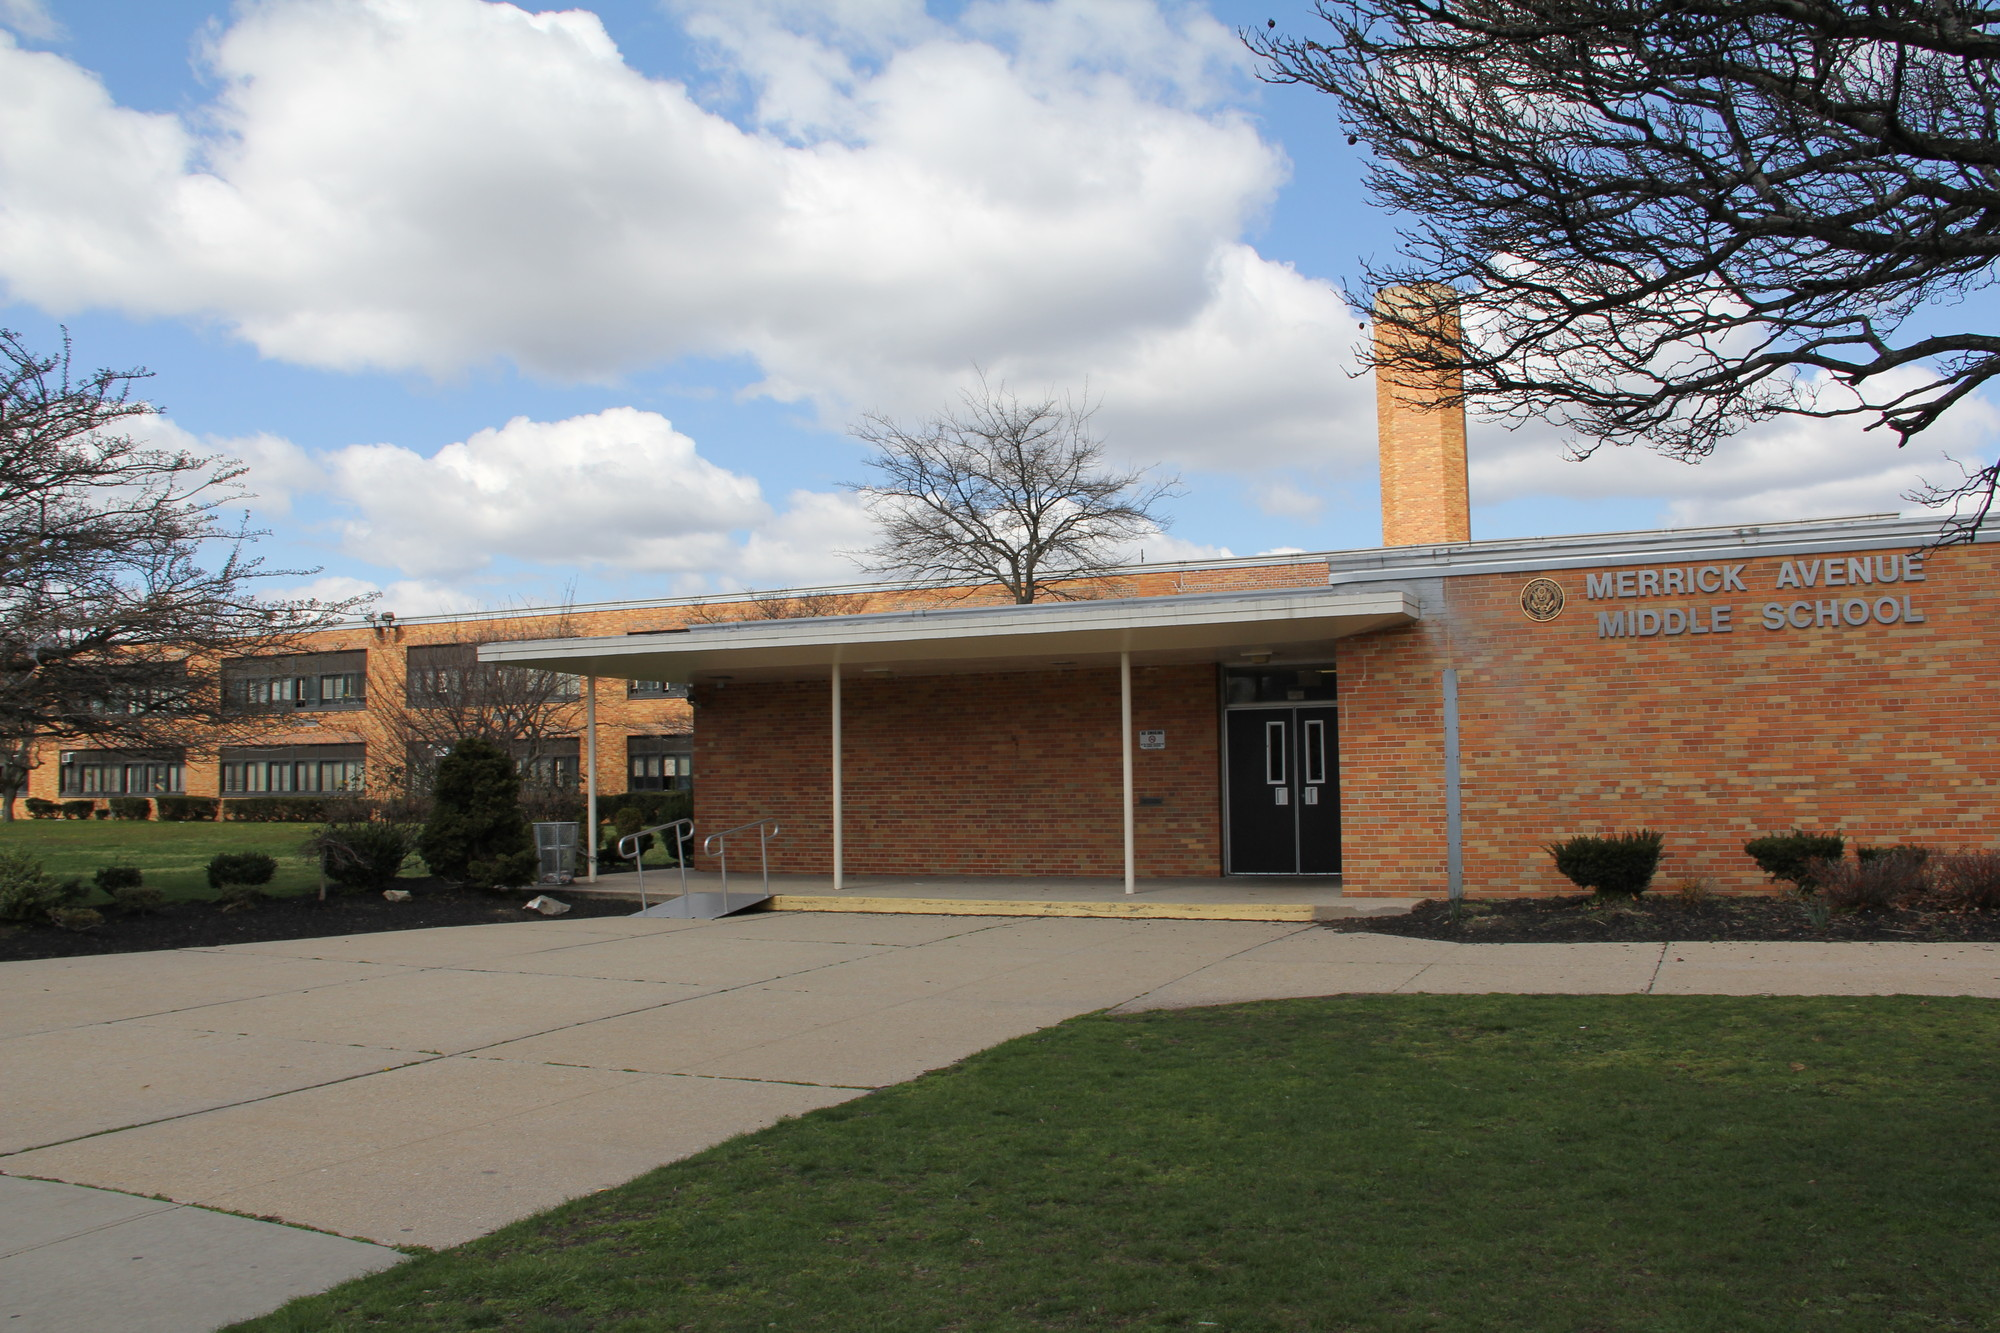 Last year, three Merrick Avenue Middle School students allegedly spread false rumors online that a lewd video contained images of a girl who attended Merrick elementary schools before moving to a private school in seventh grade, according to a lawsuit the girl's parents filed against the Bellmore-Merrick Central High School District.